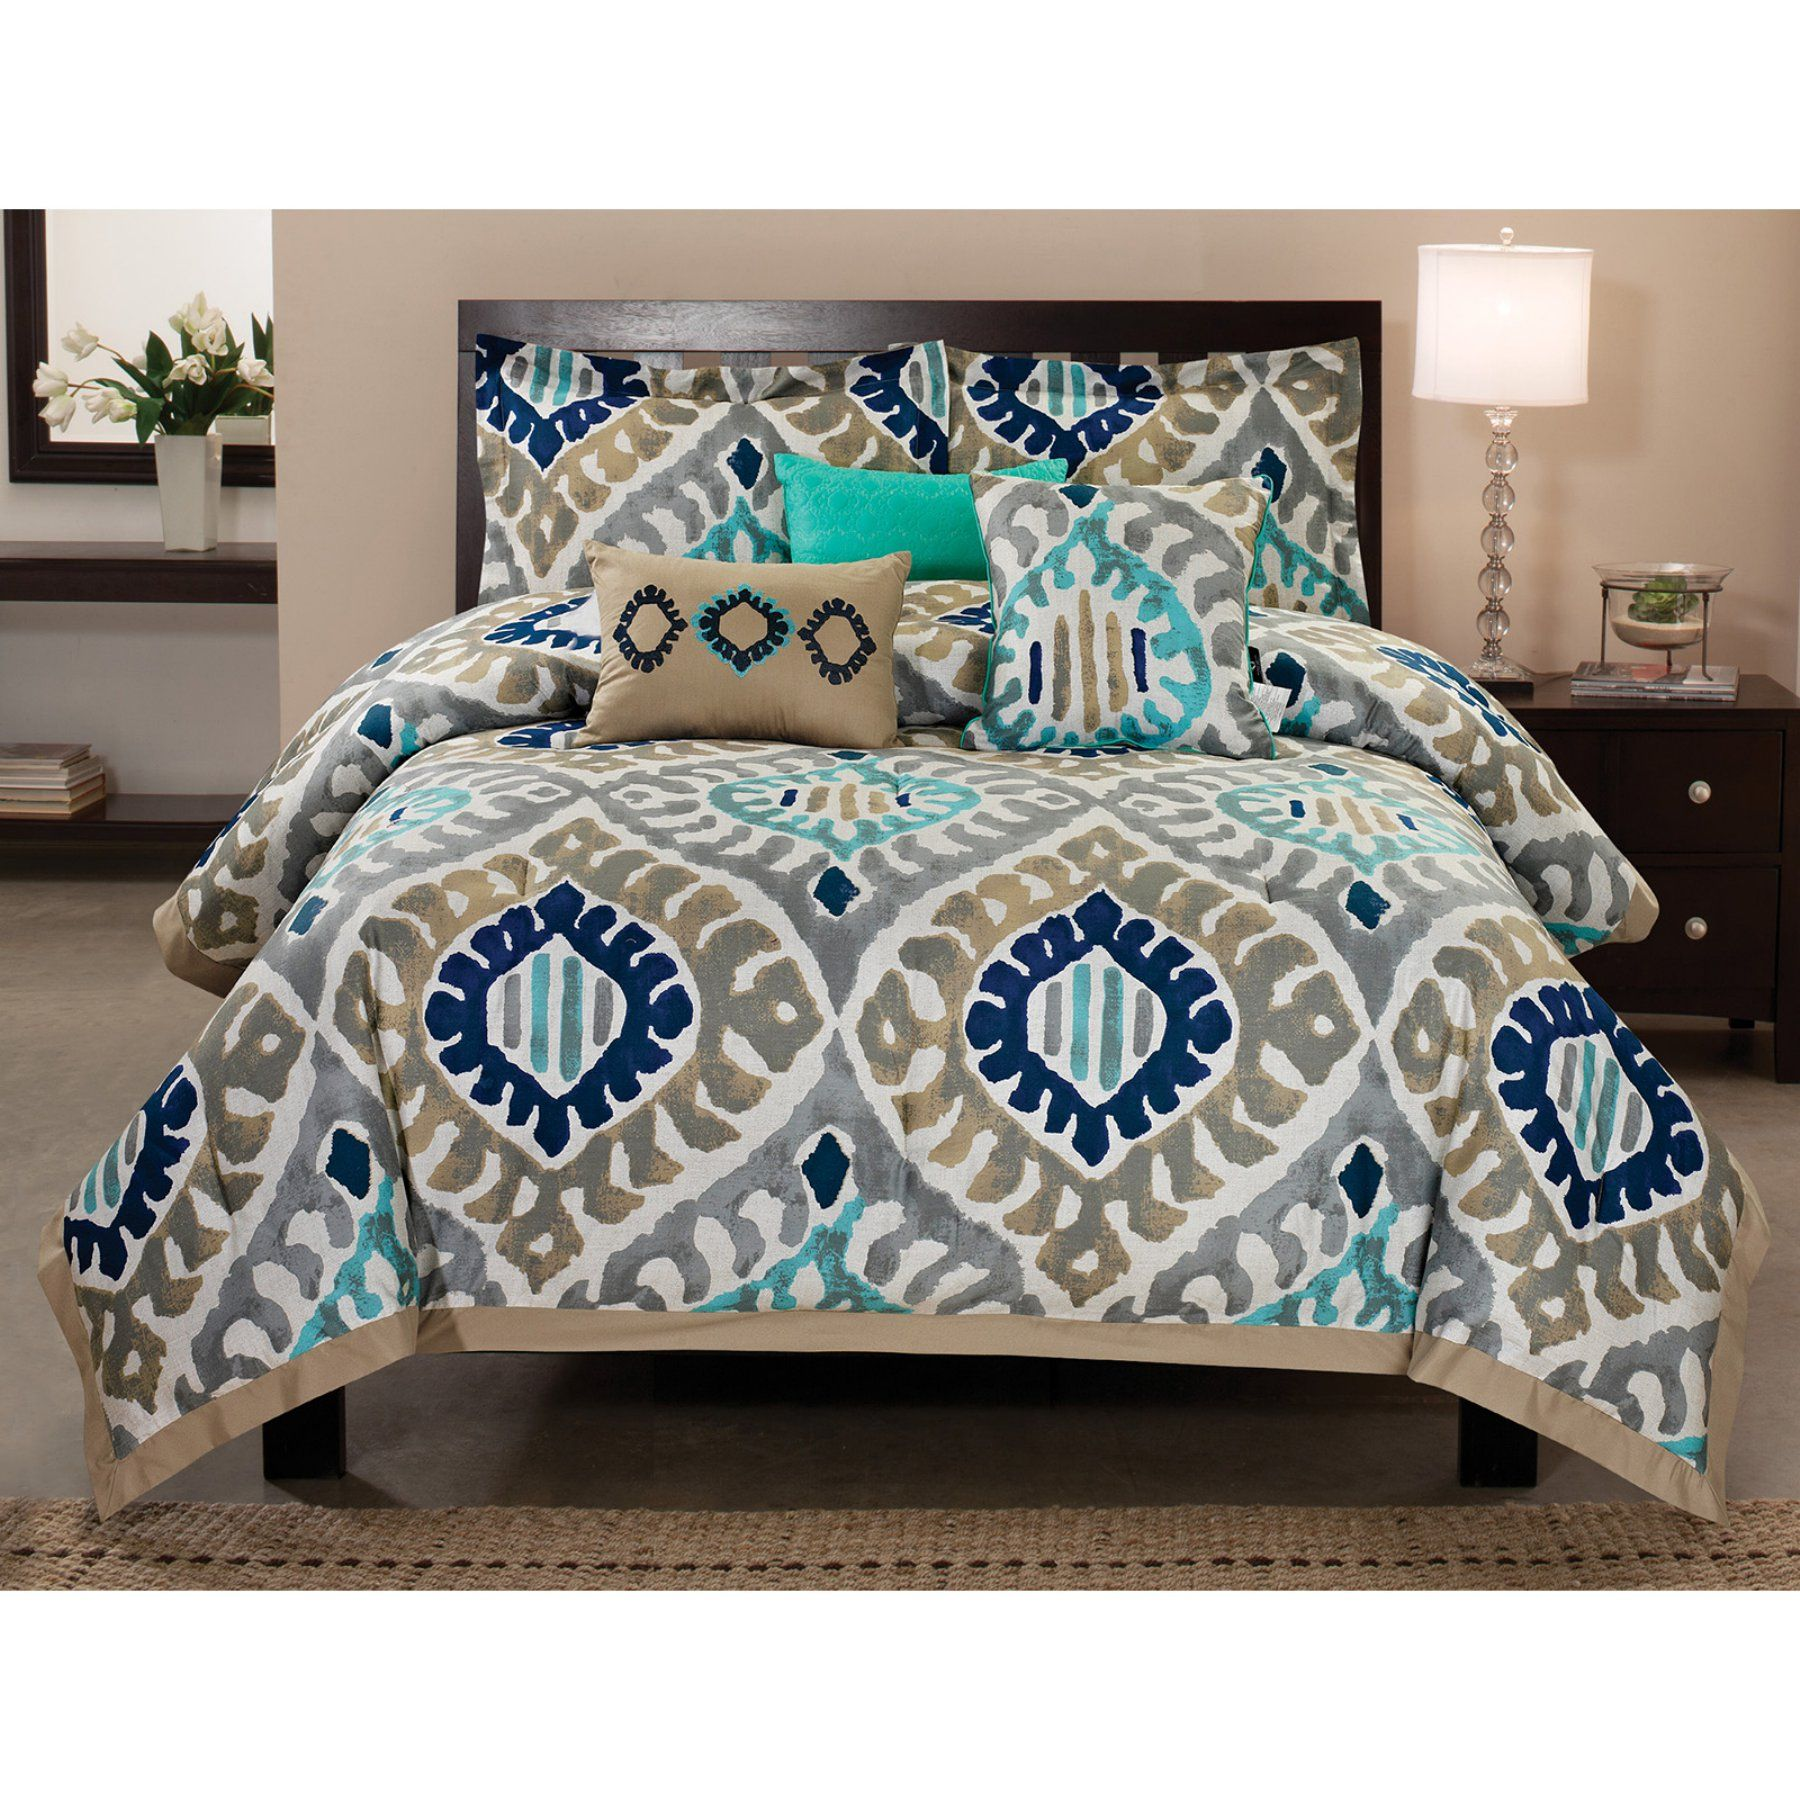 Utopia 6 Piece Cotton Comforter Set By Rt Designers Collection